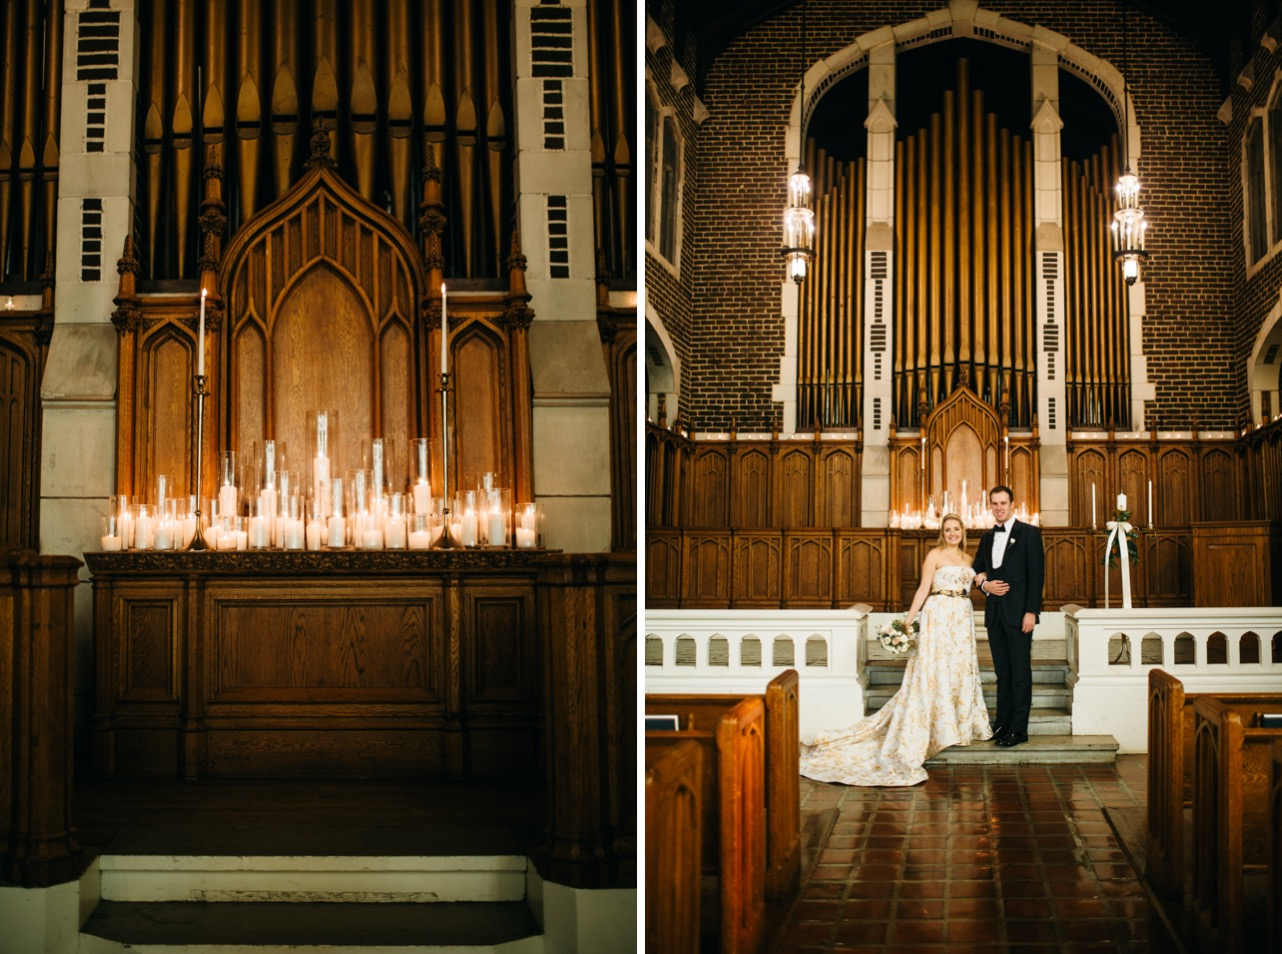 White candles are lit inside the chapel. Bride and groom link arms inside the chapel at their wedding at Hunter Museum.